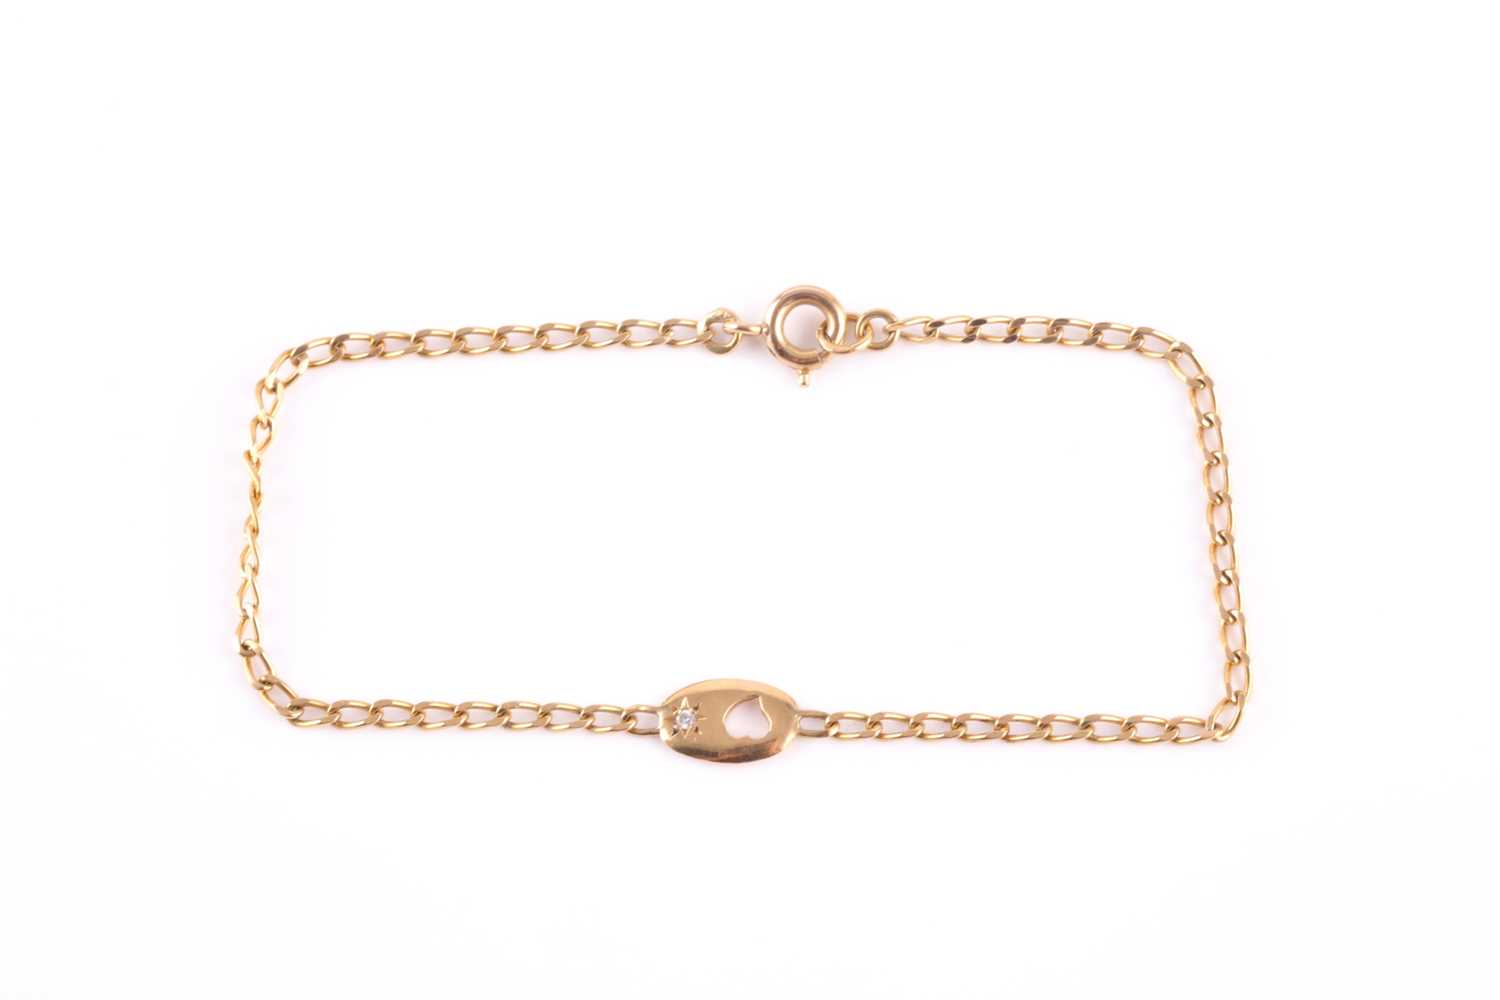 An 18ct yellow gold bracelet, with a small oval pendant loop inset with a small white stone, 18 cm - Image 3 of 3